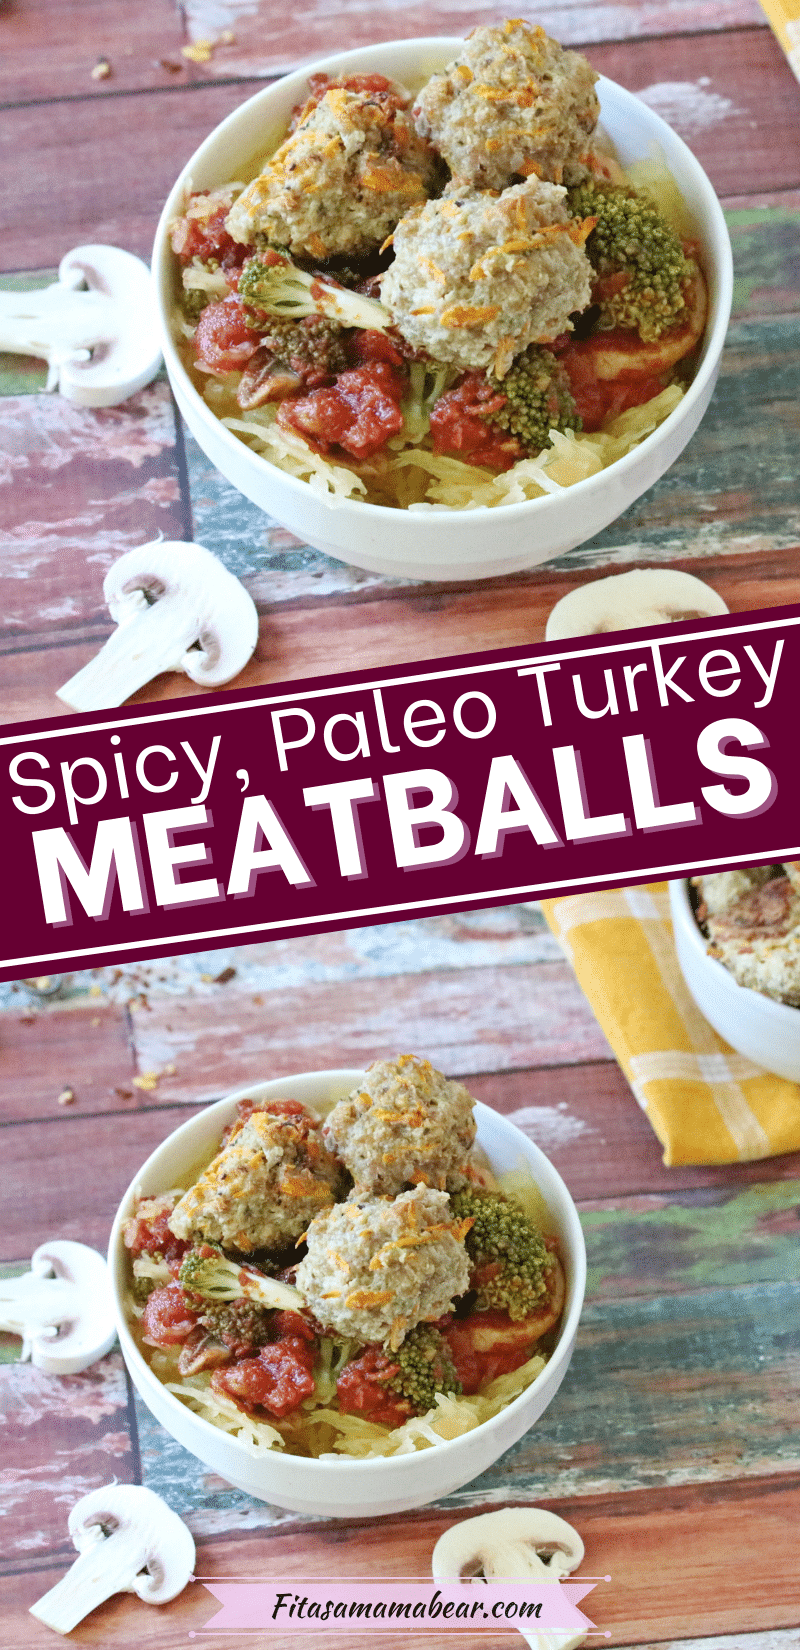 Pin image with text: two pictures of turkey meatballs on spaghetti squash and tomato sauce in a white bowl